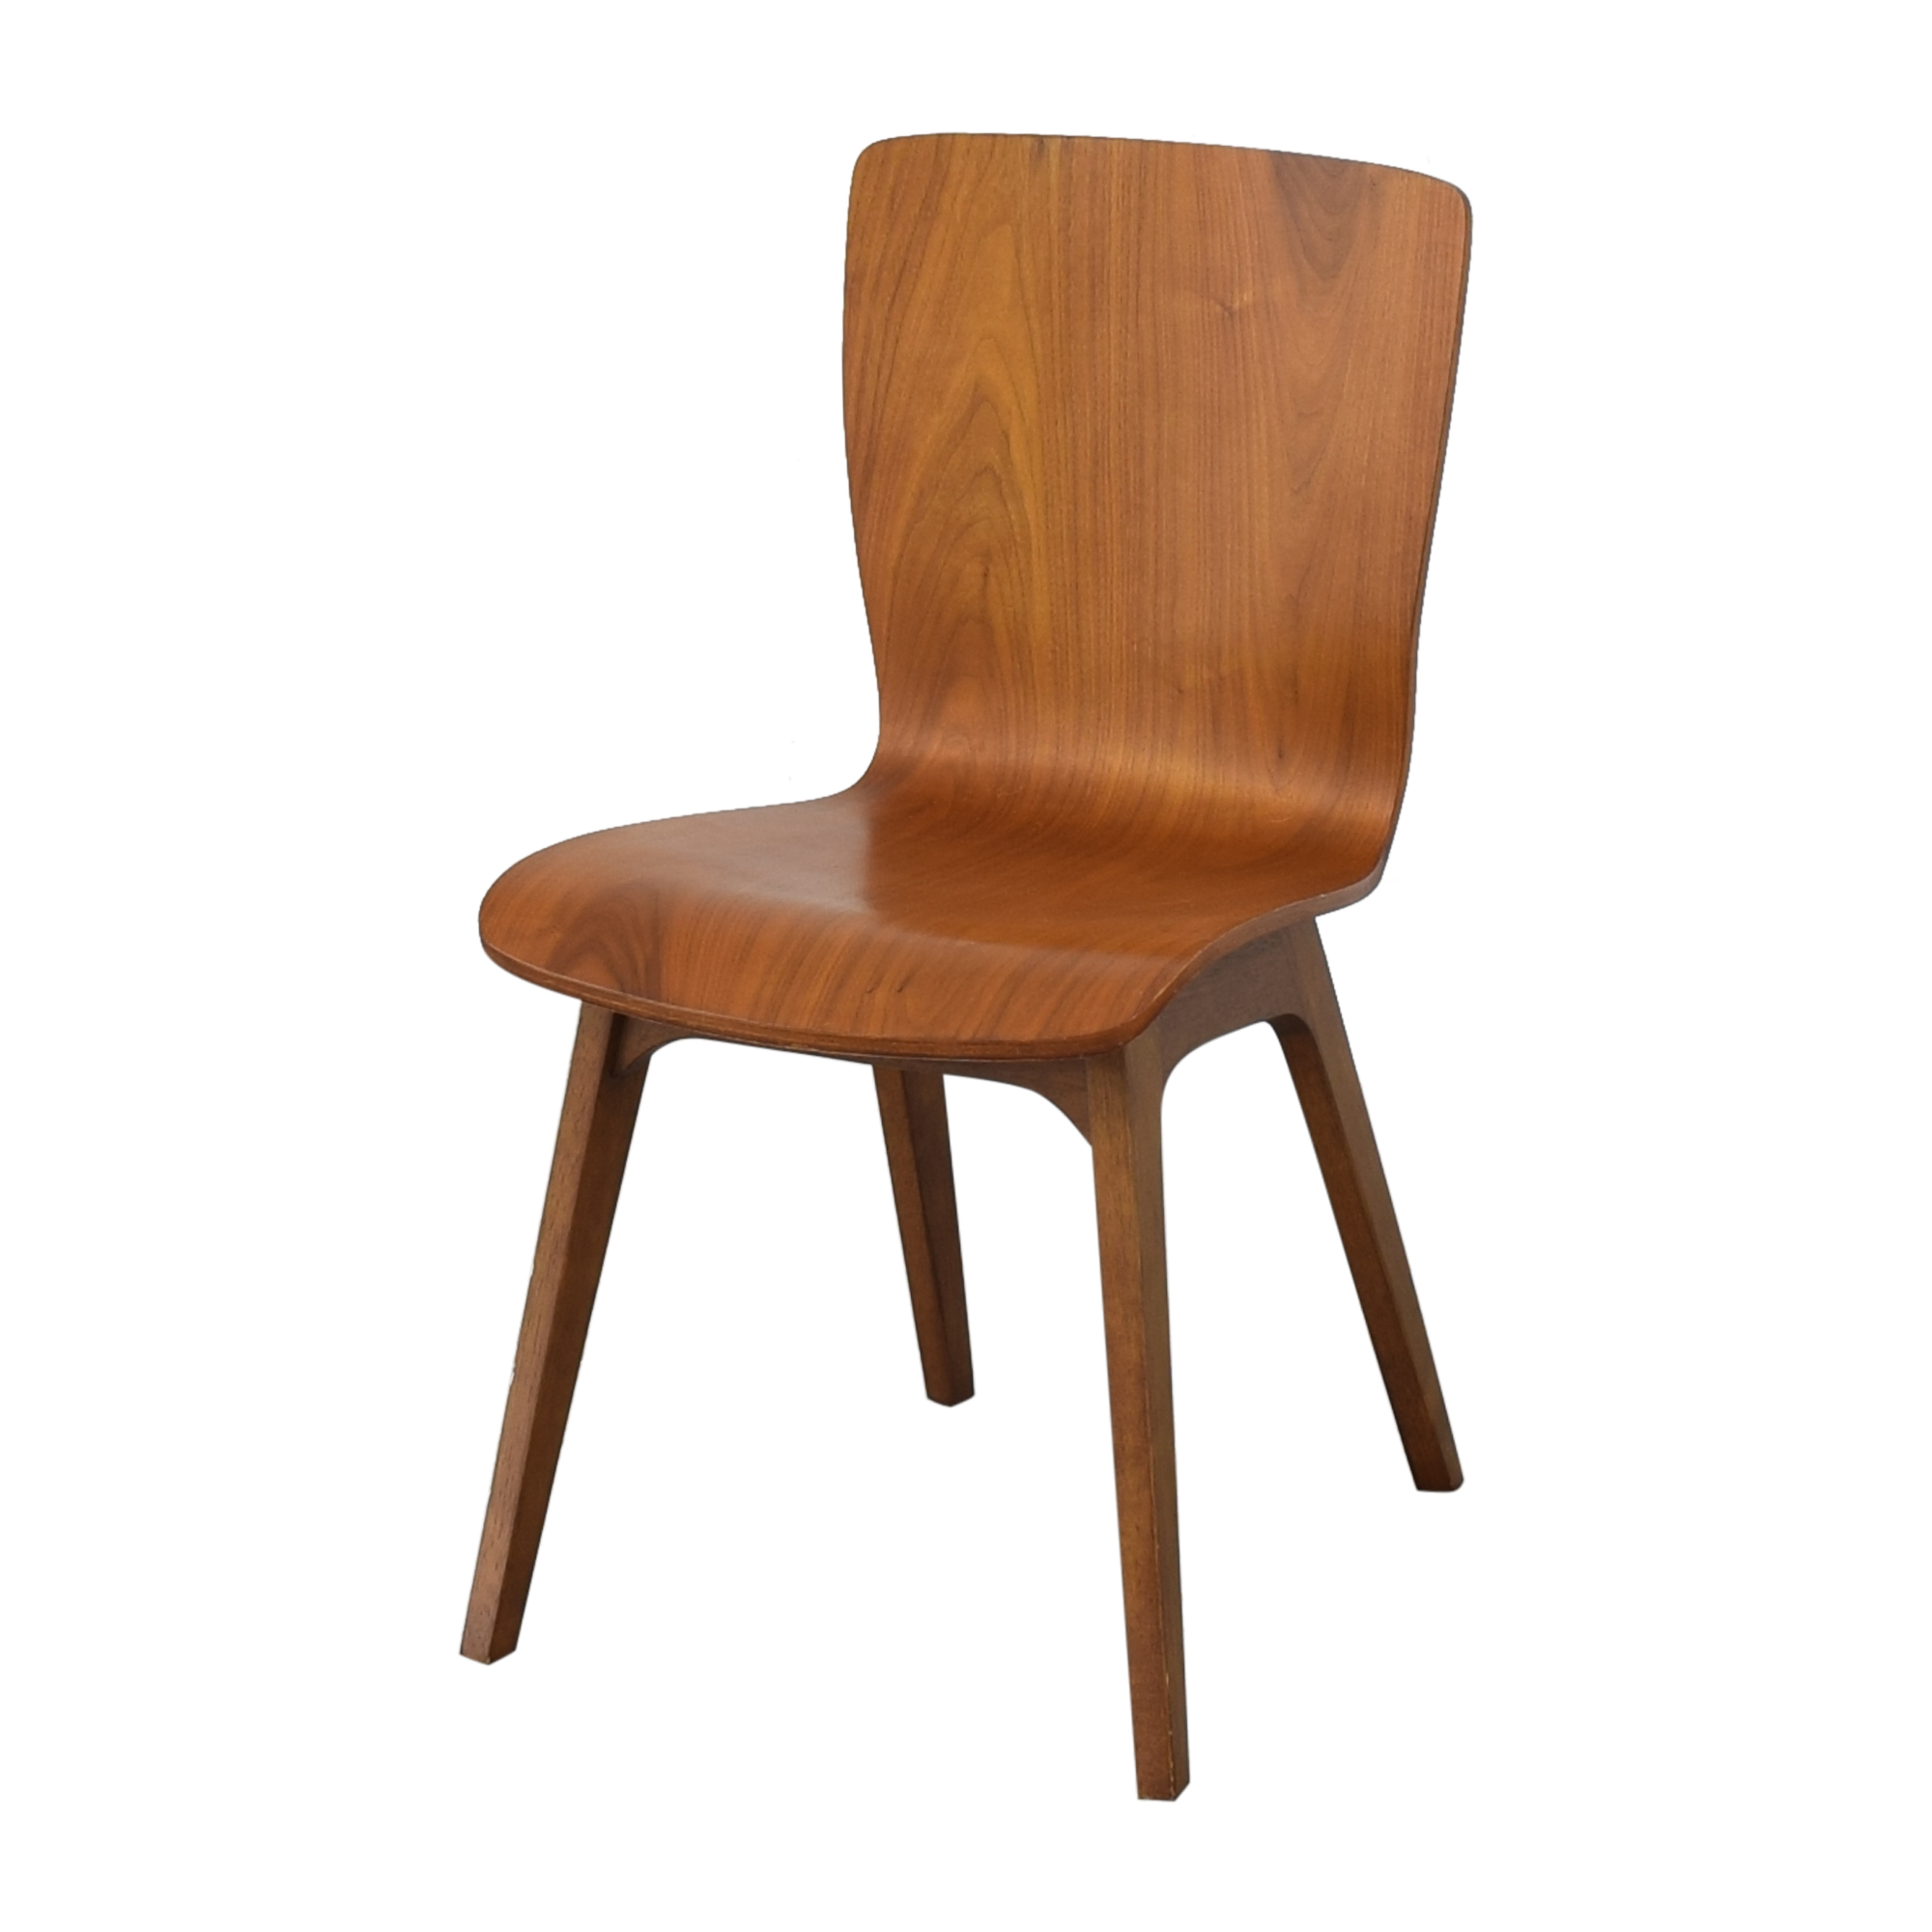 West Elm Crest Brentwood Chairs / Chairs